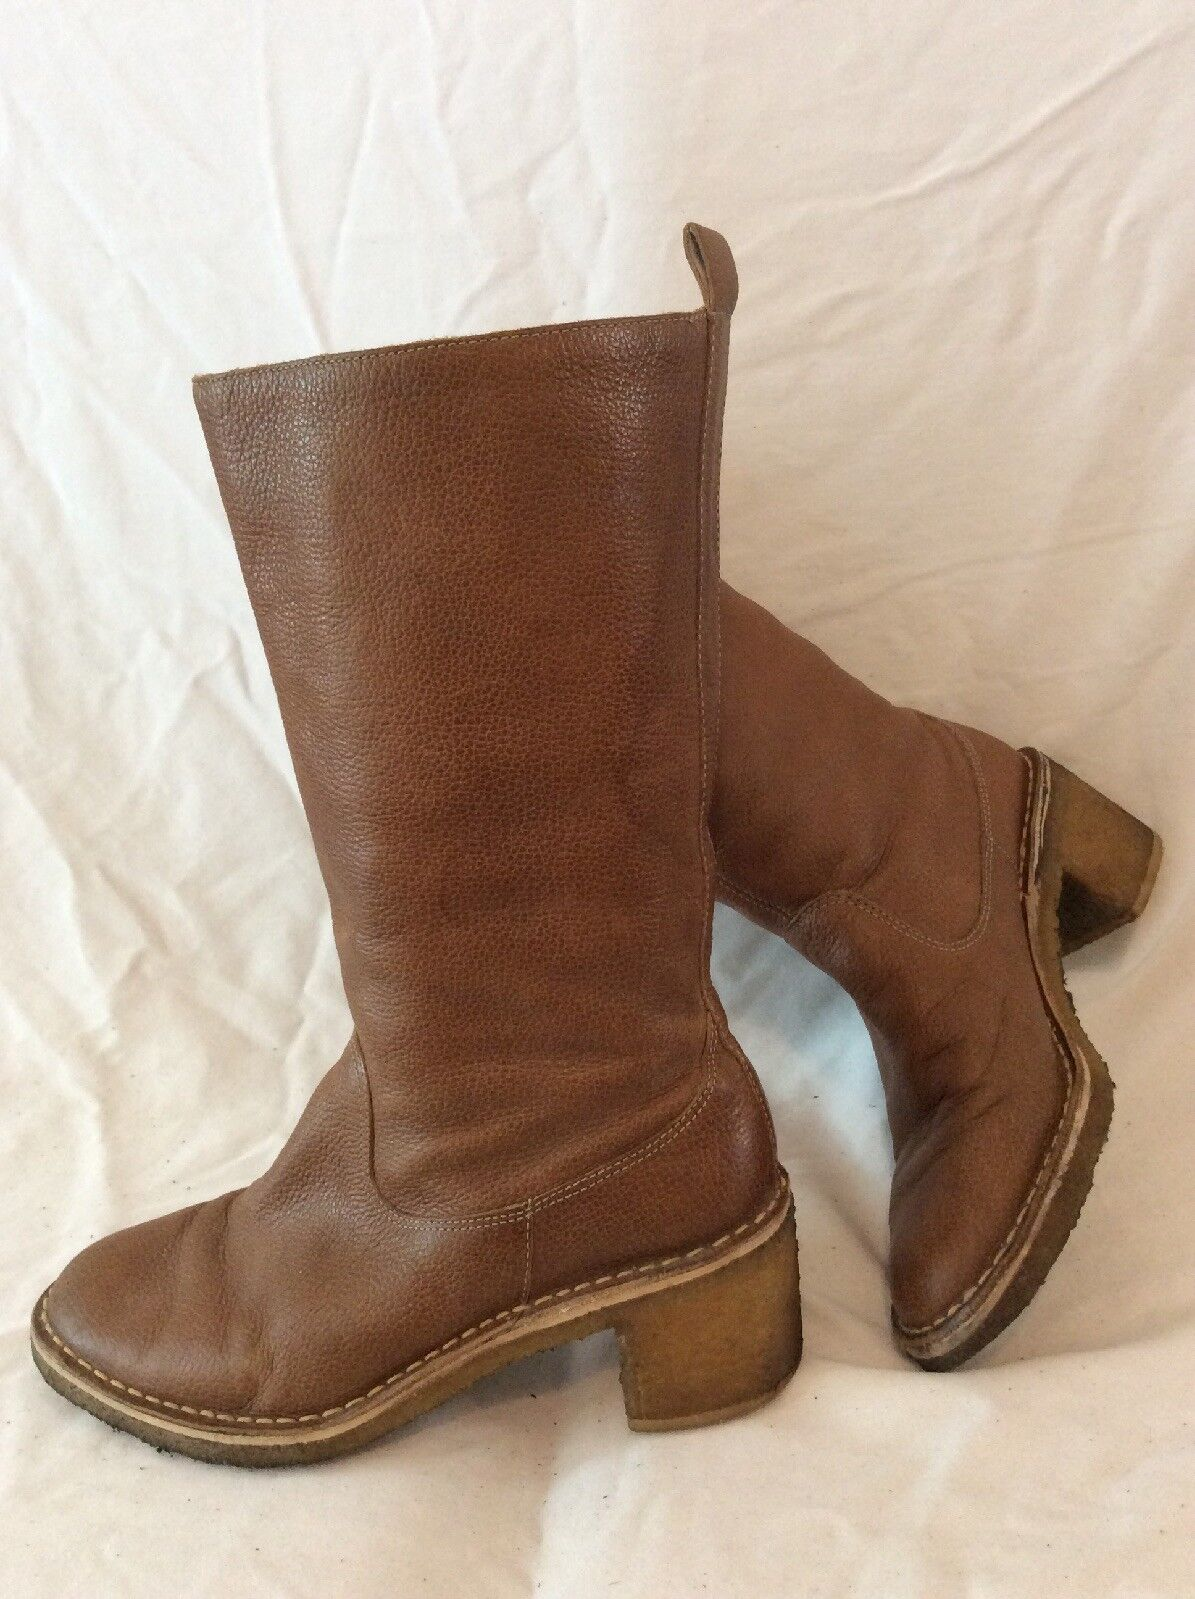 Design Edition For GAP Brown Mid Calf Leather Boots Size 38